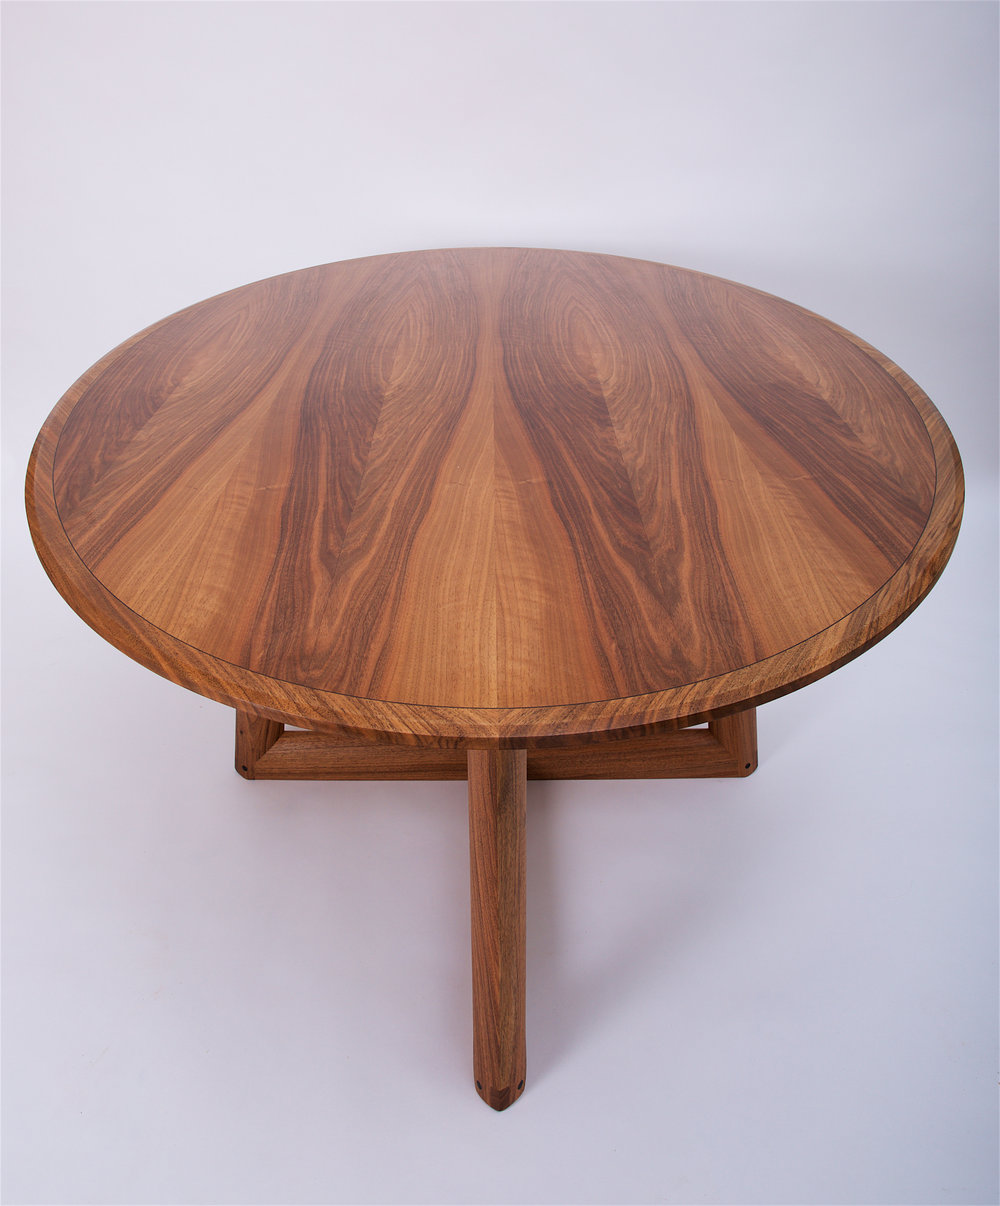 Petrel furniture ellipse dining table in English walnut